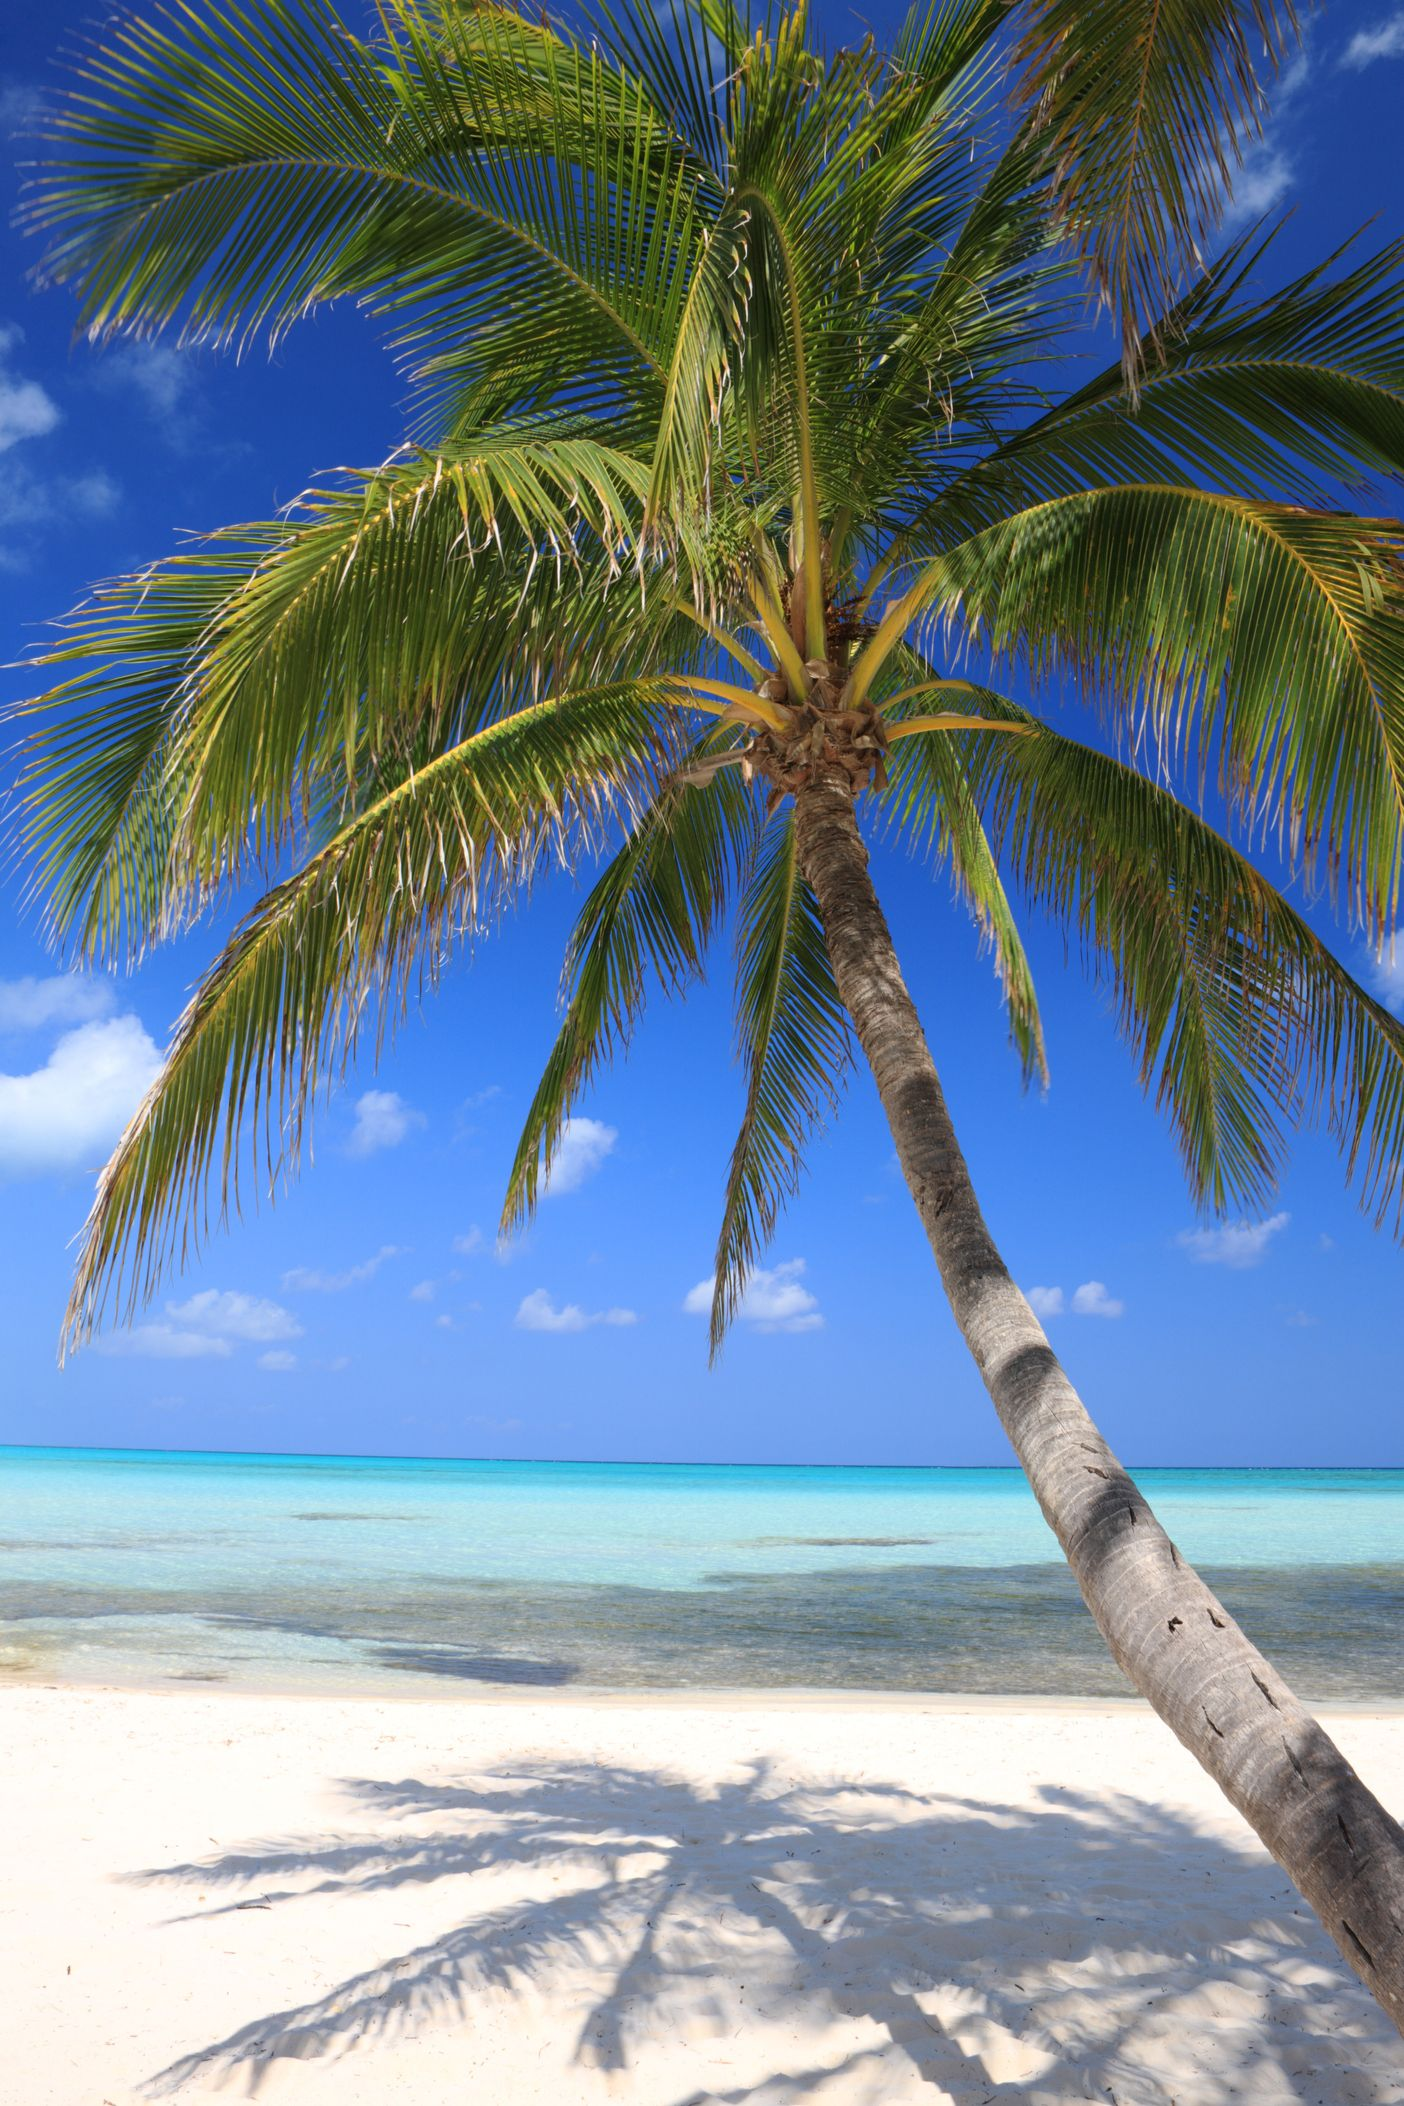 Best Places for Solo Travelers - Cayman Islands